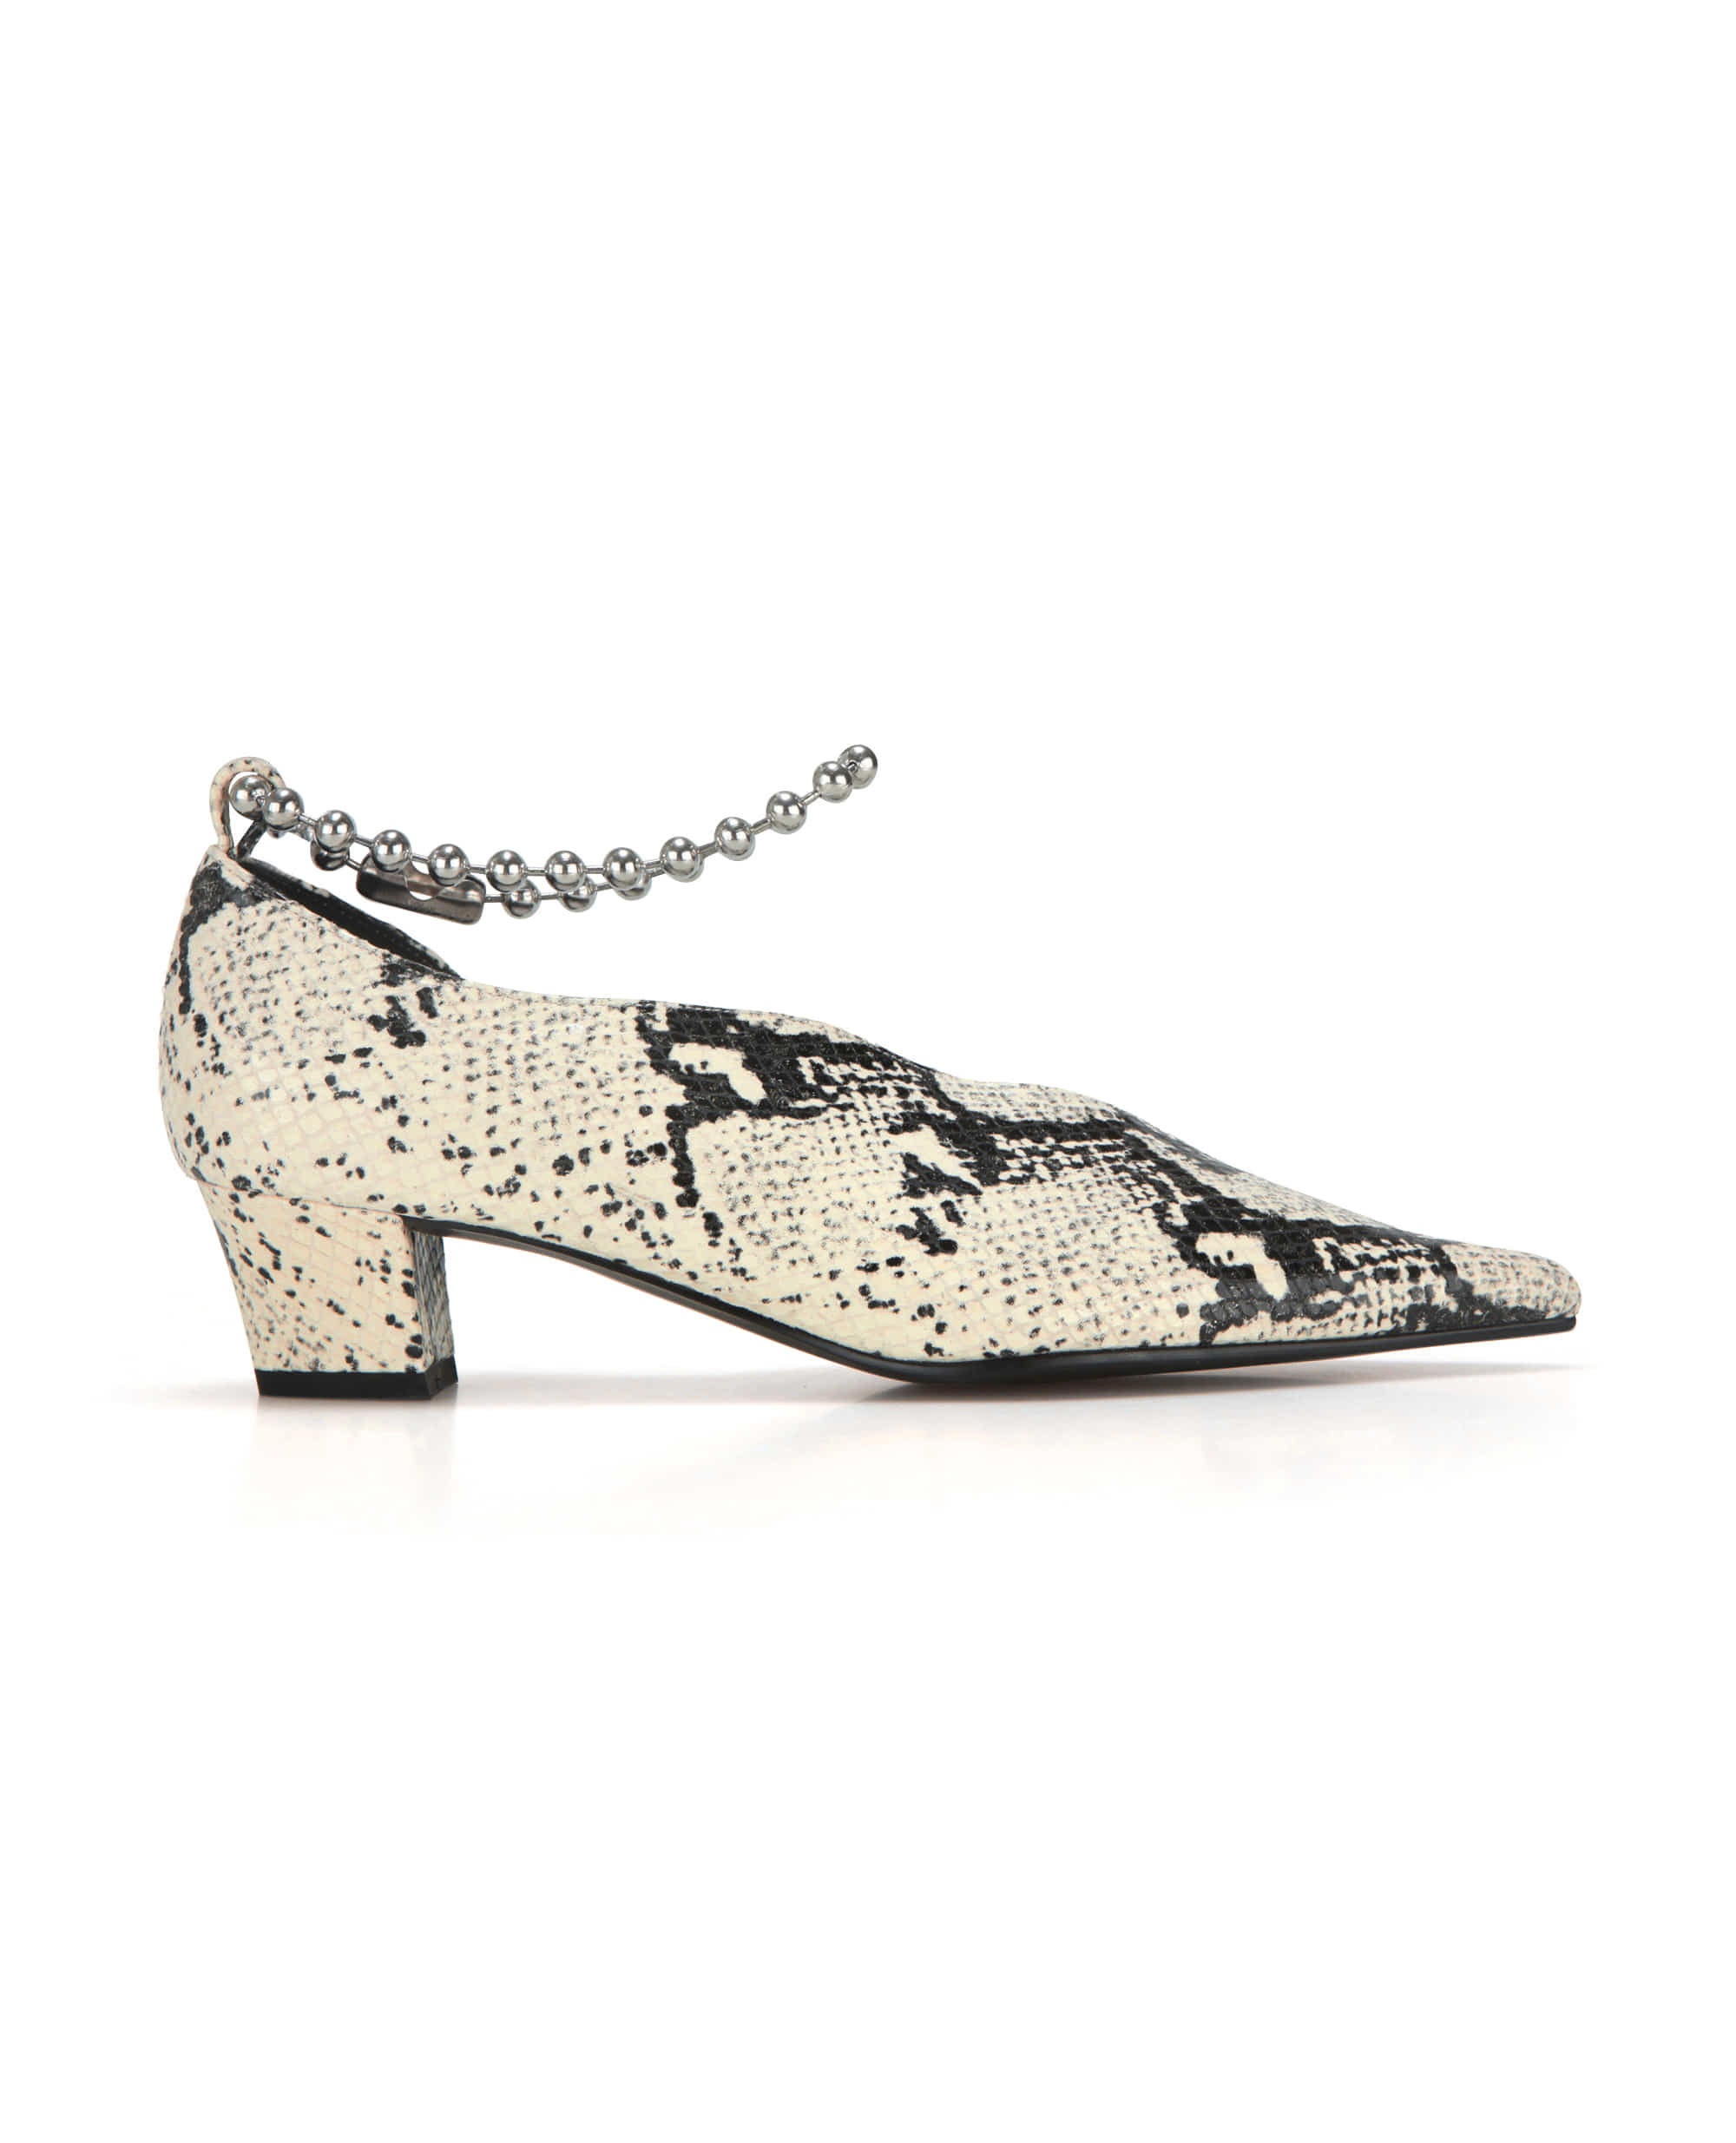 Extreme sharp toe streamlined heels (+ball chain) | Butter snake